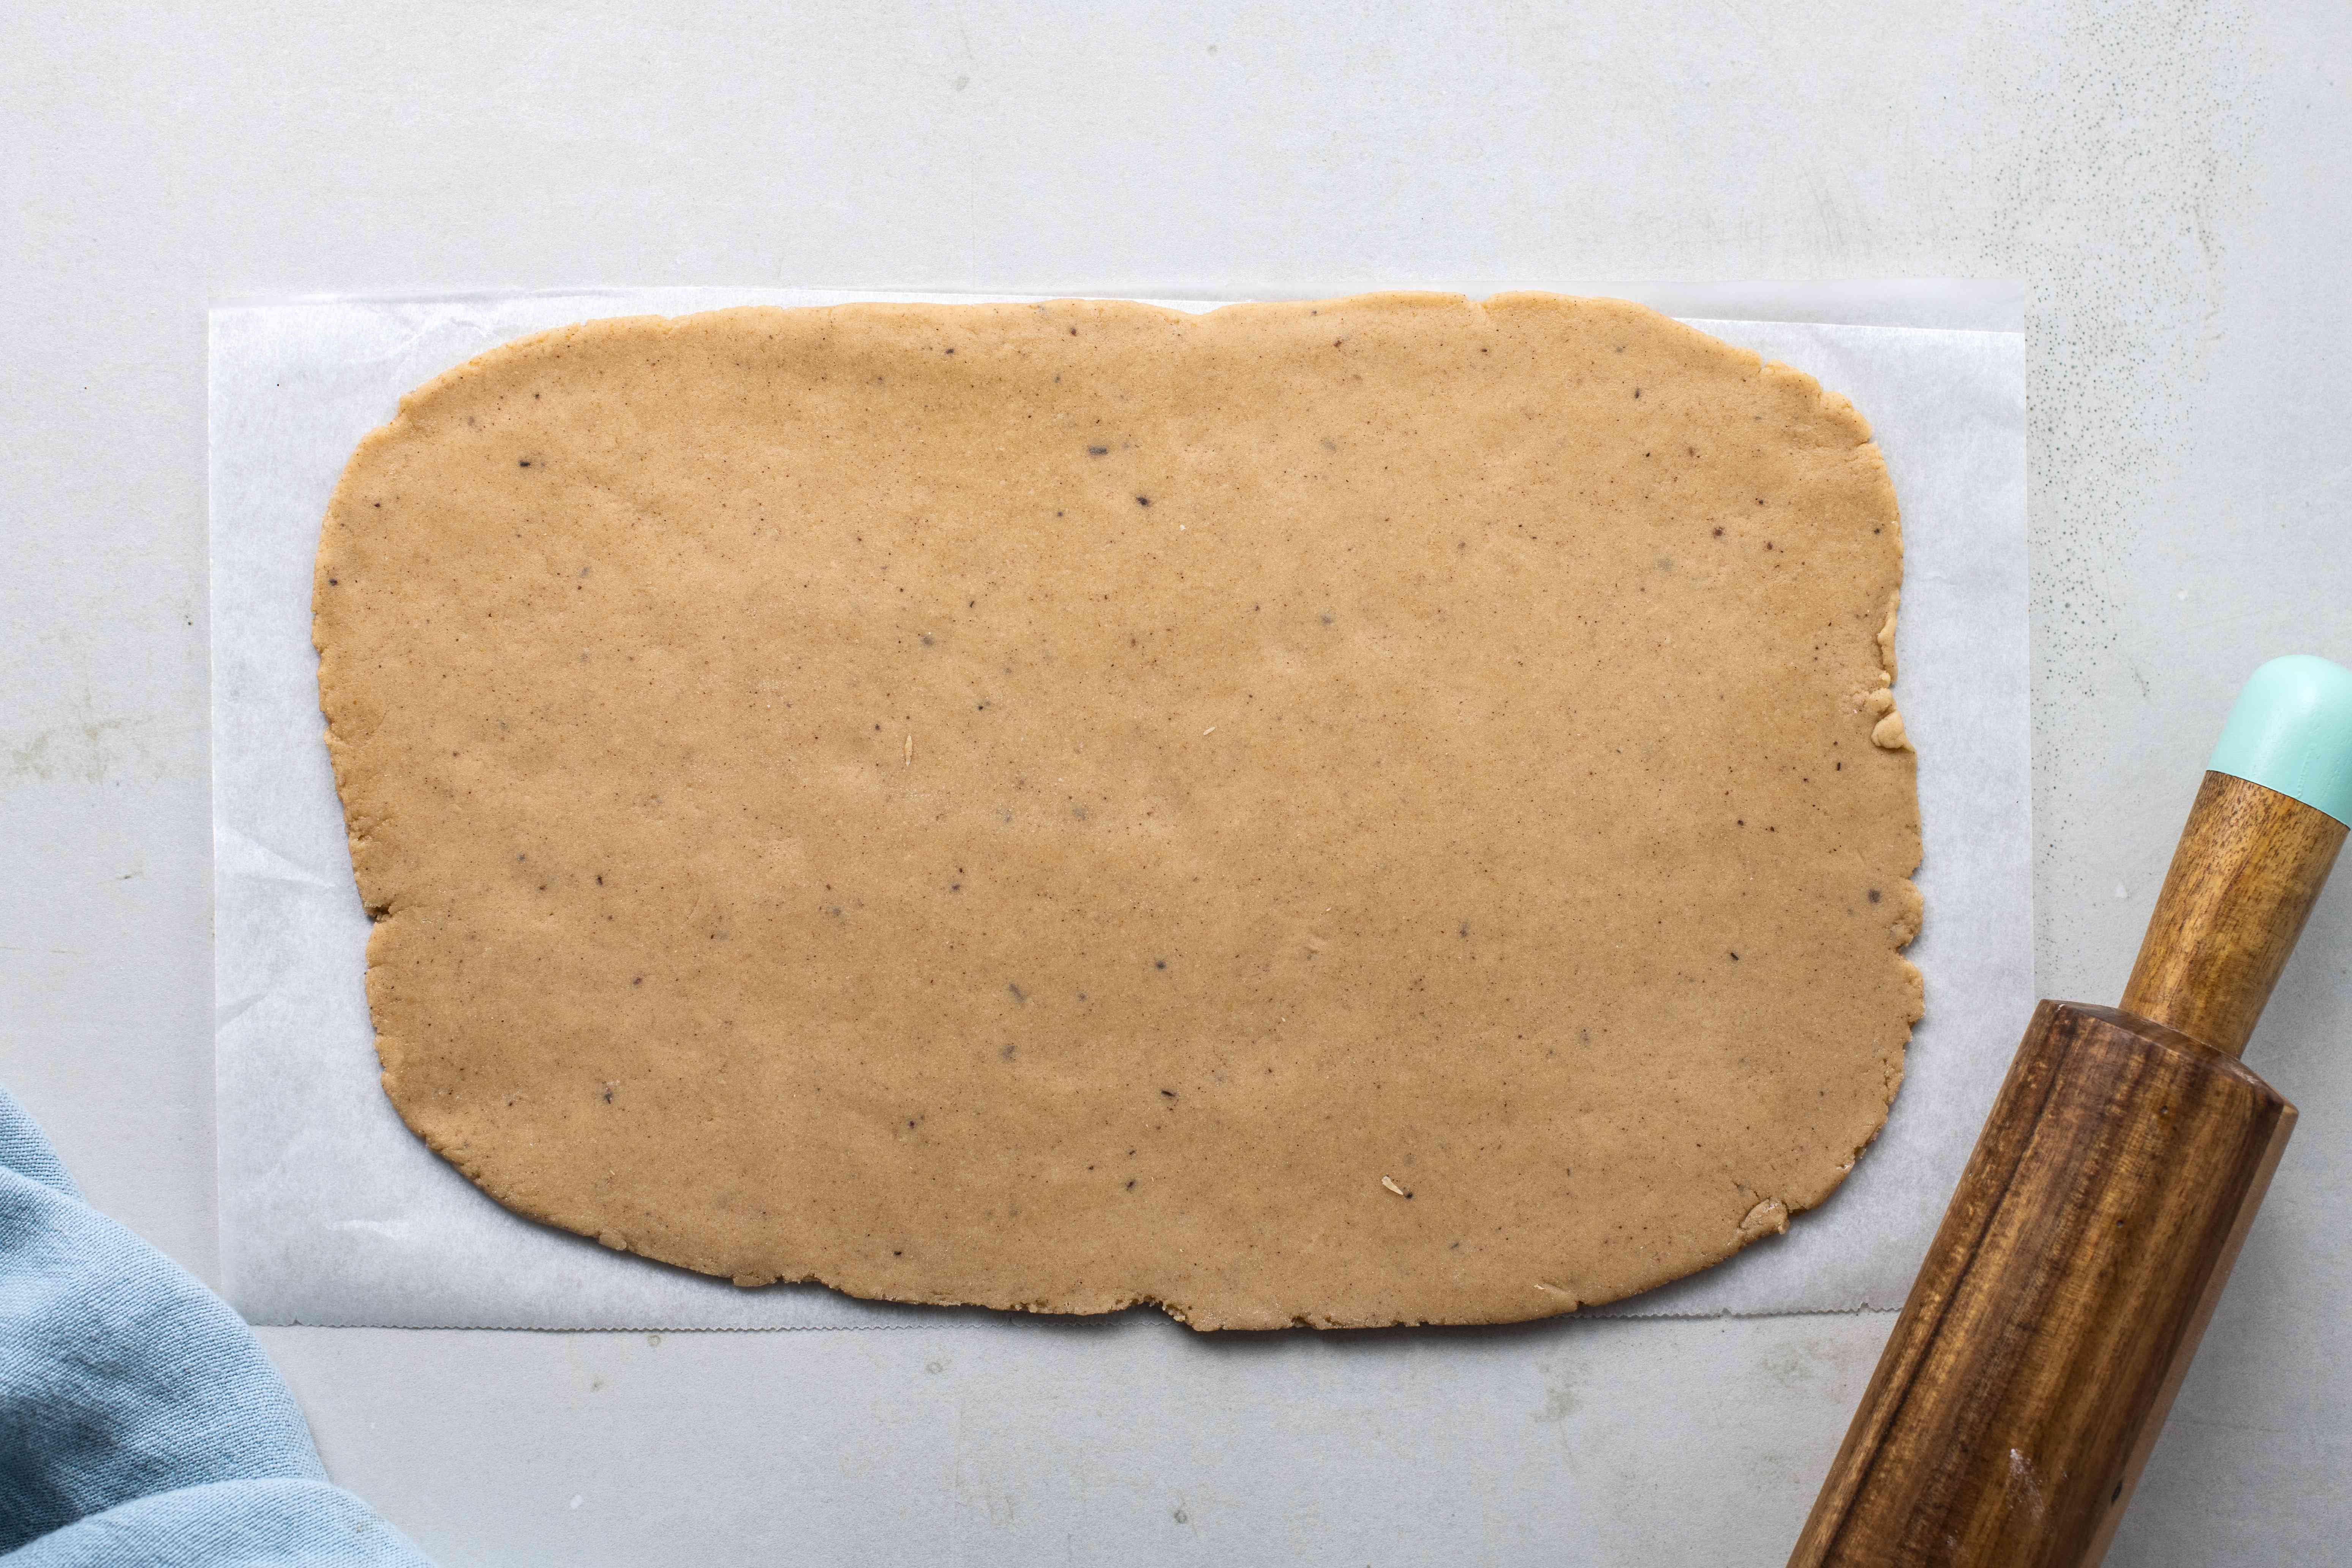 Roll out dough